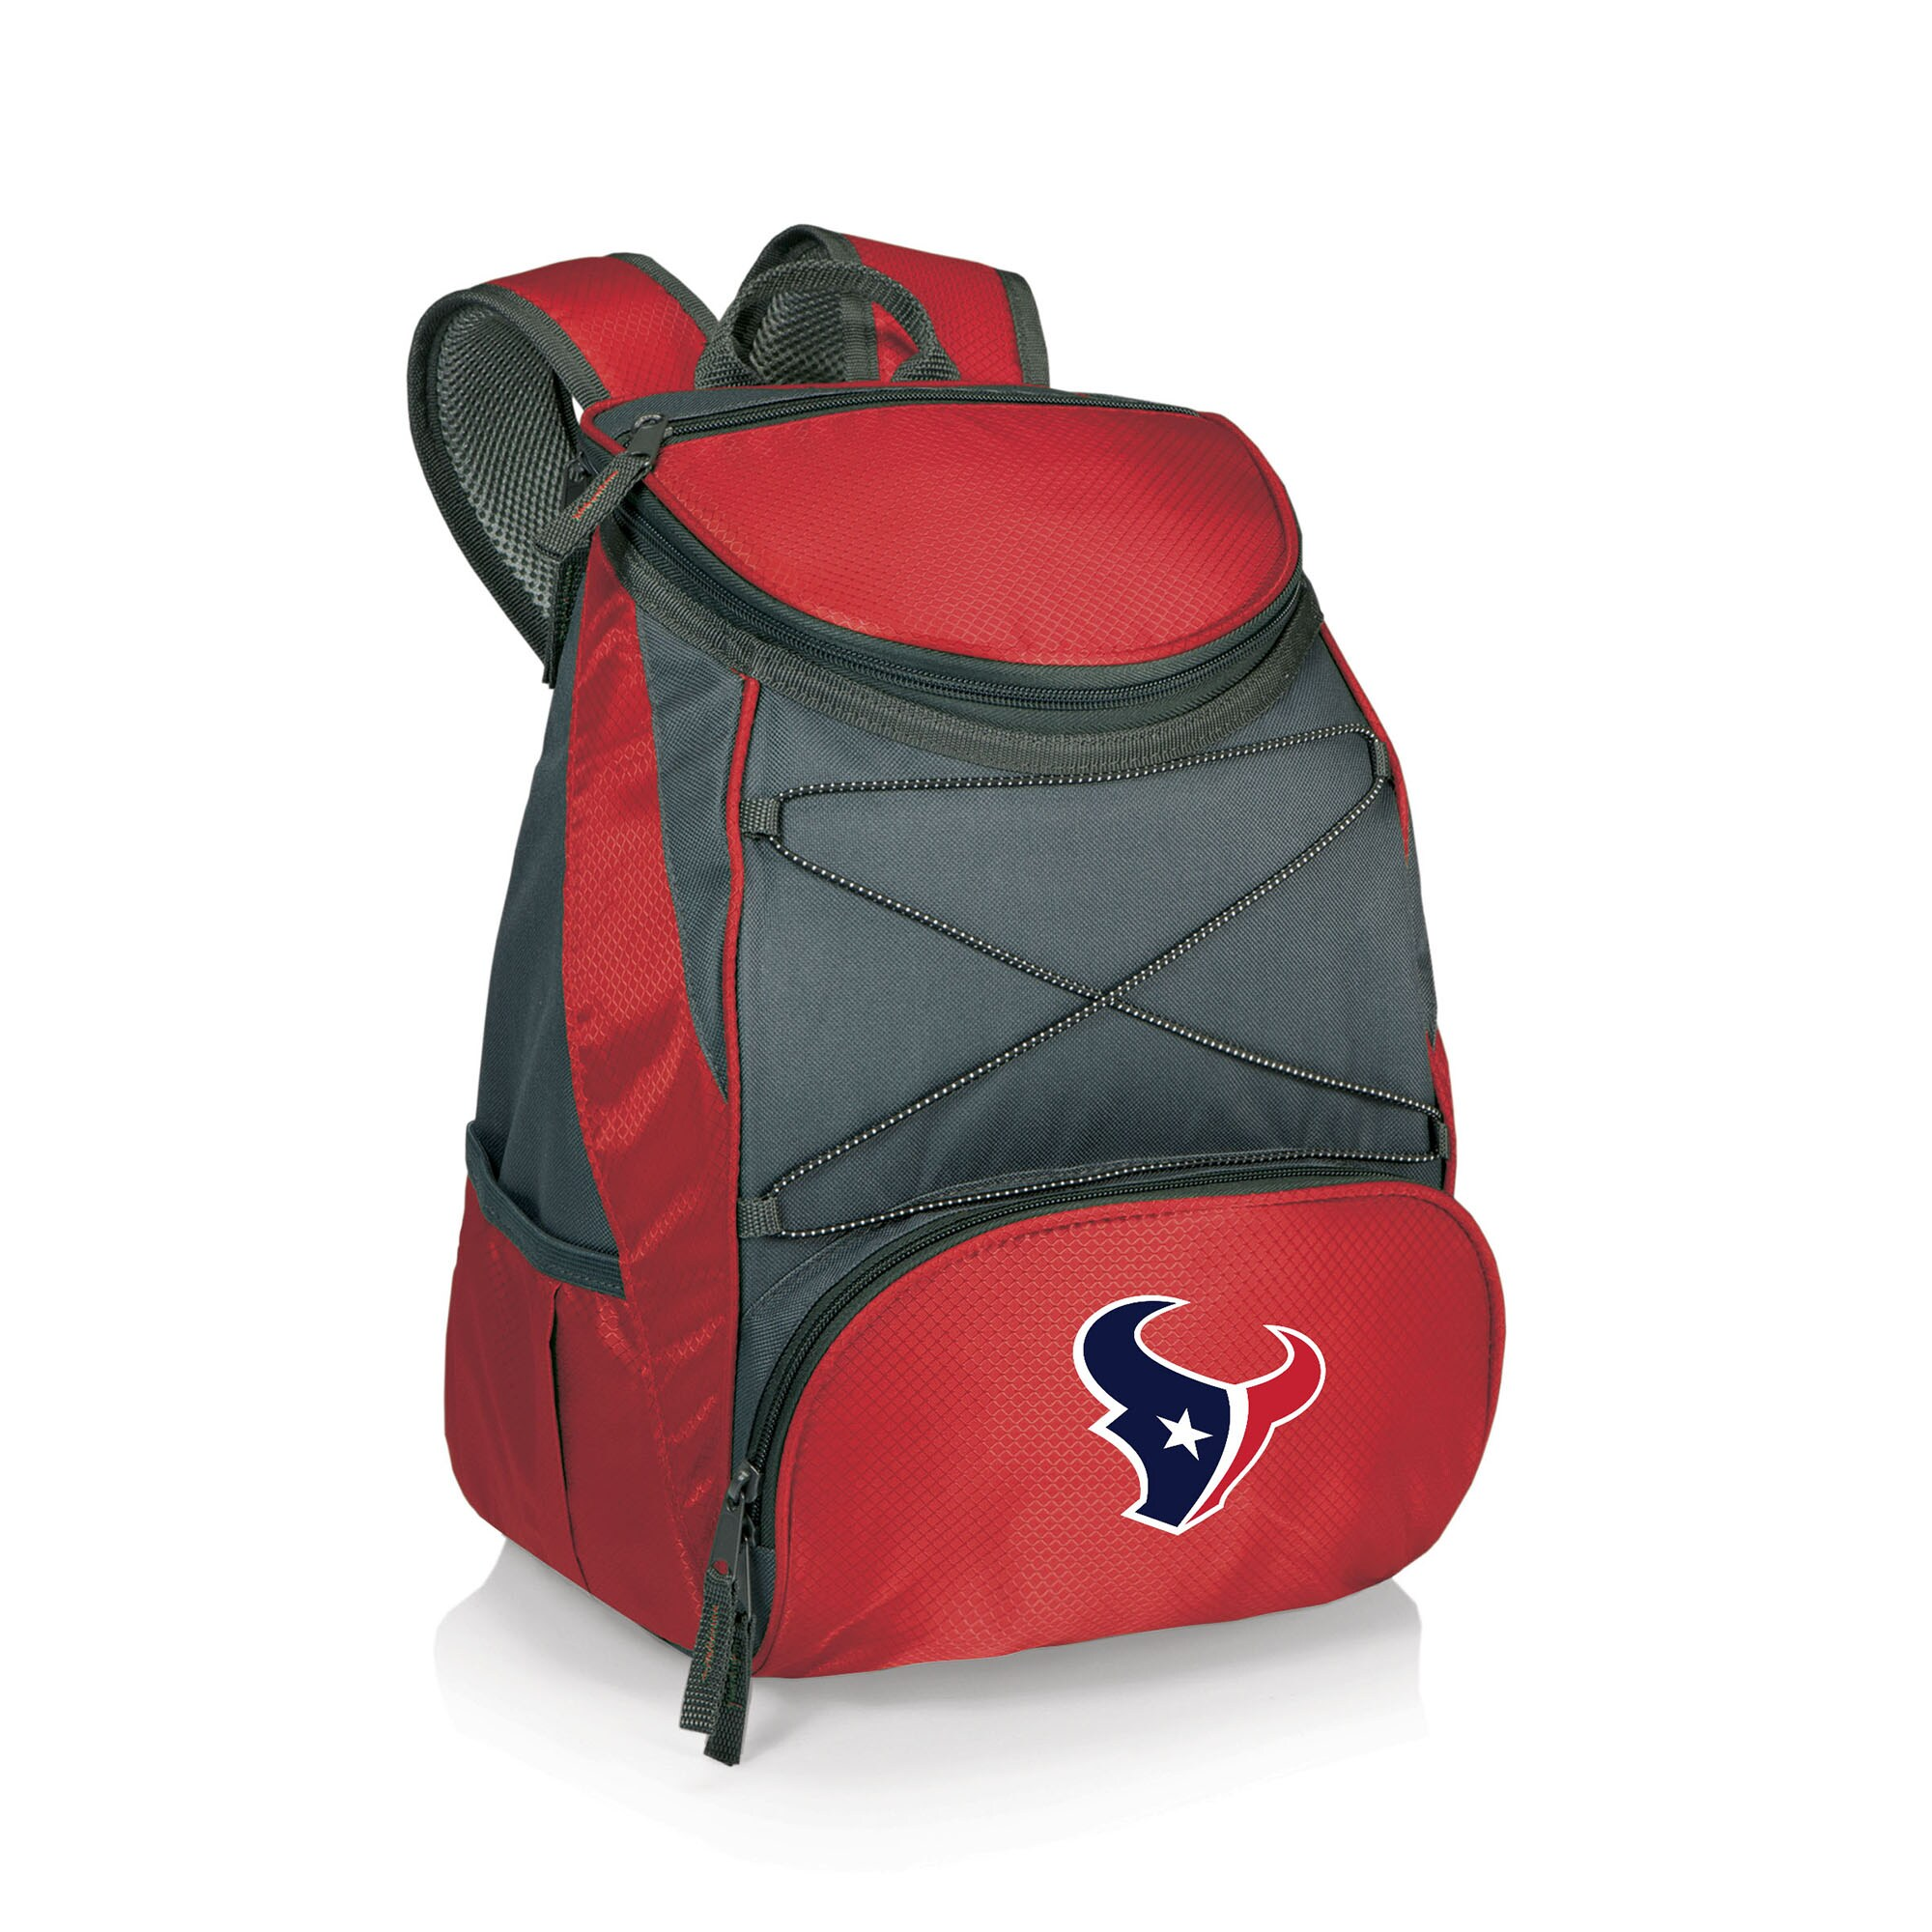 Houston Texans PTX Backpack Cooler - Red